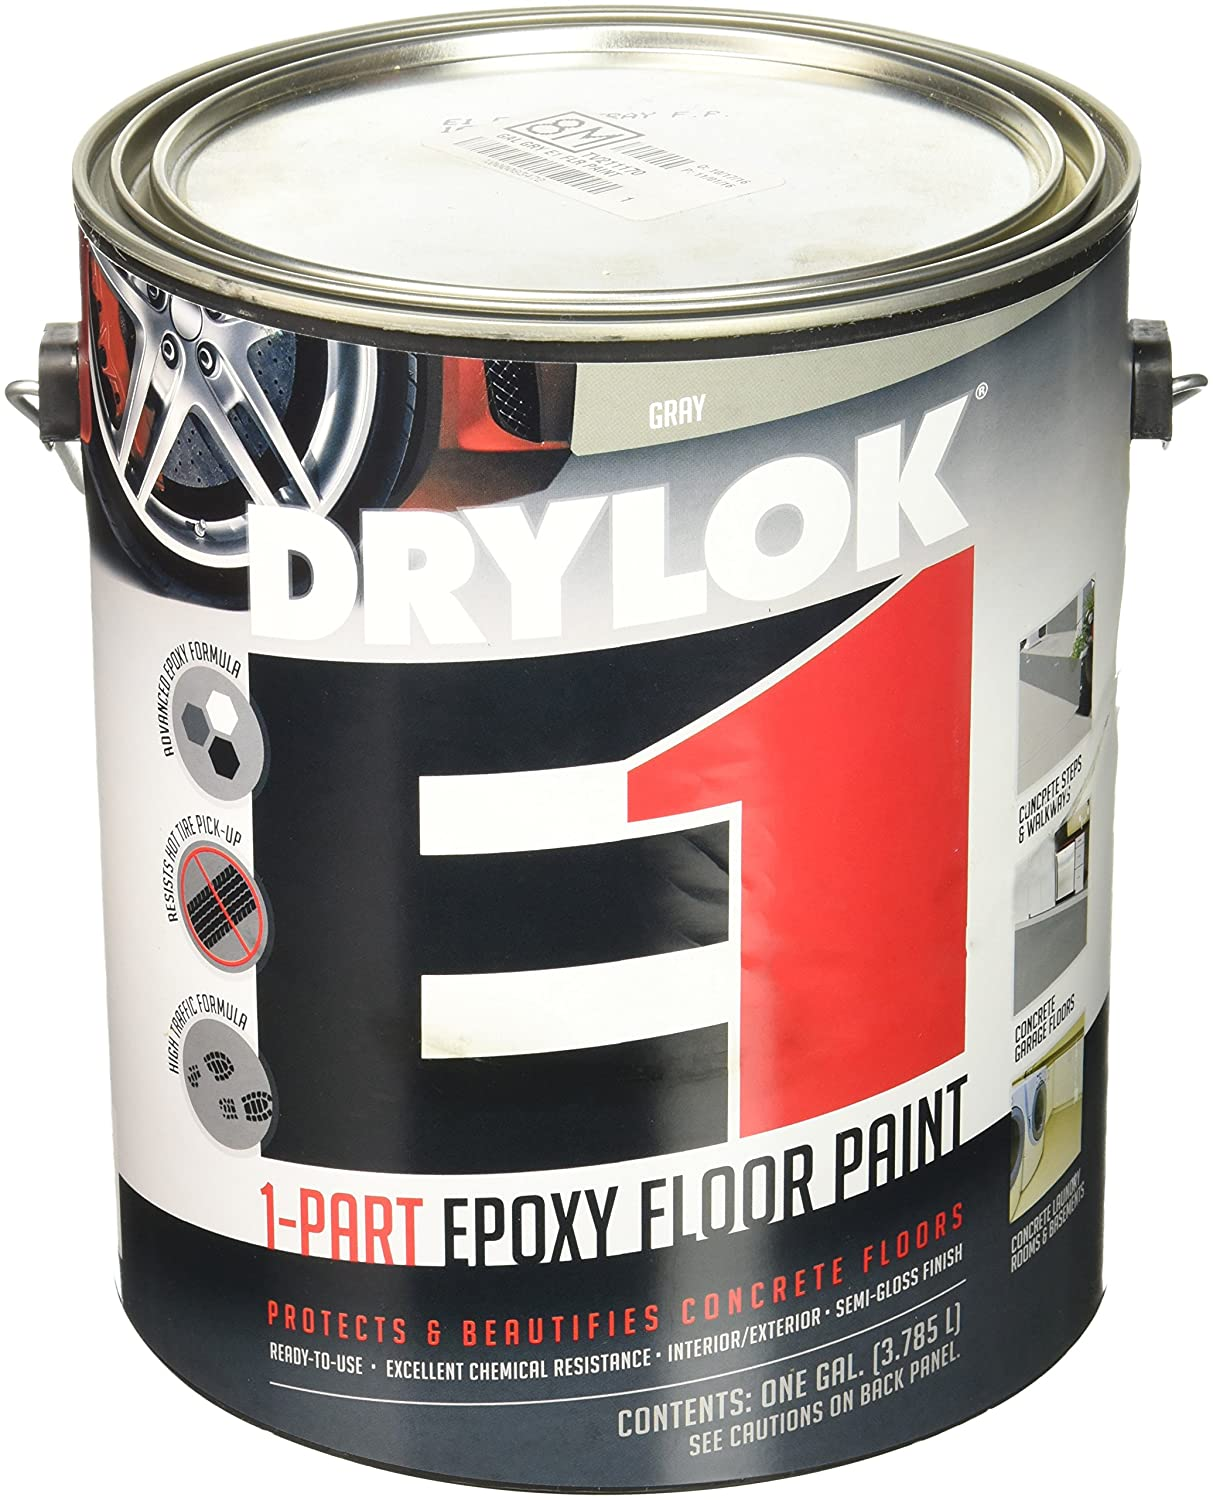 floors how pro drying going floor lowes does paint reviews gal on colors plug to hydraulic cement concrete drylock drylok lions old ling gallon den coat fast of wall just ugl the long time bat home over